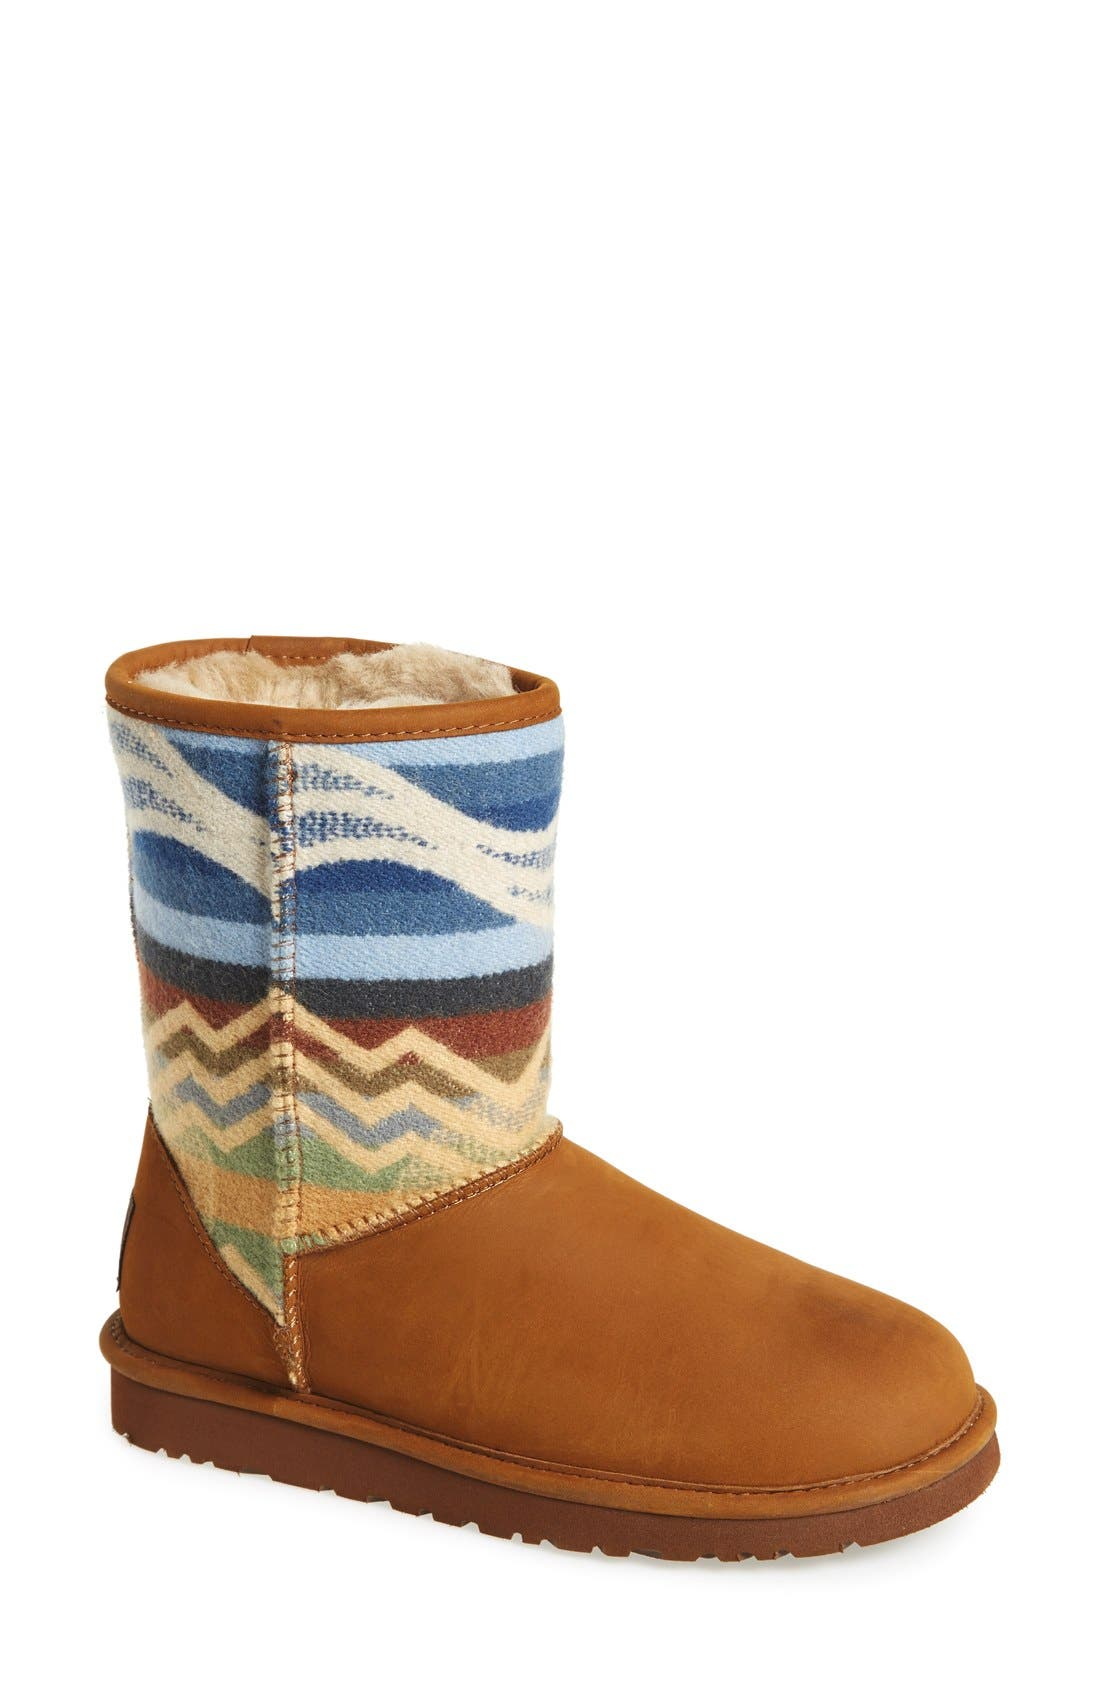 Alternate Image 1 Selected - UGG® 'Classic Short Pendleton' Boot (Women)